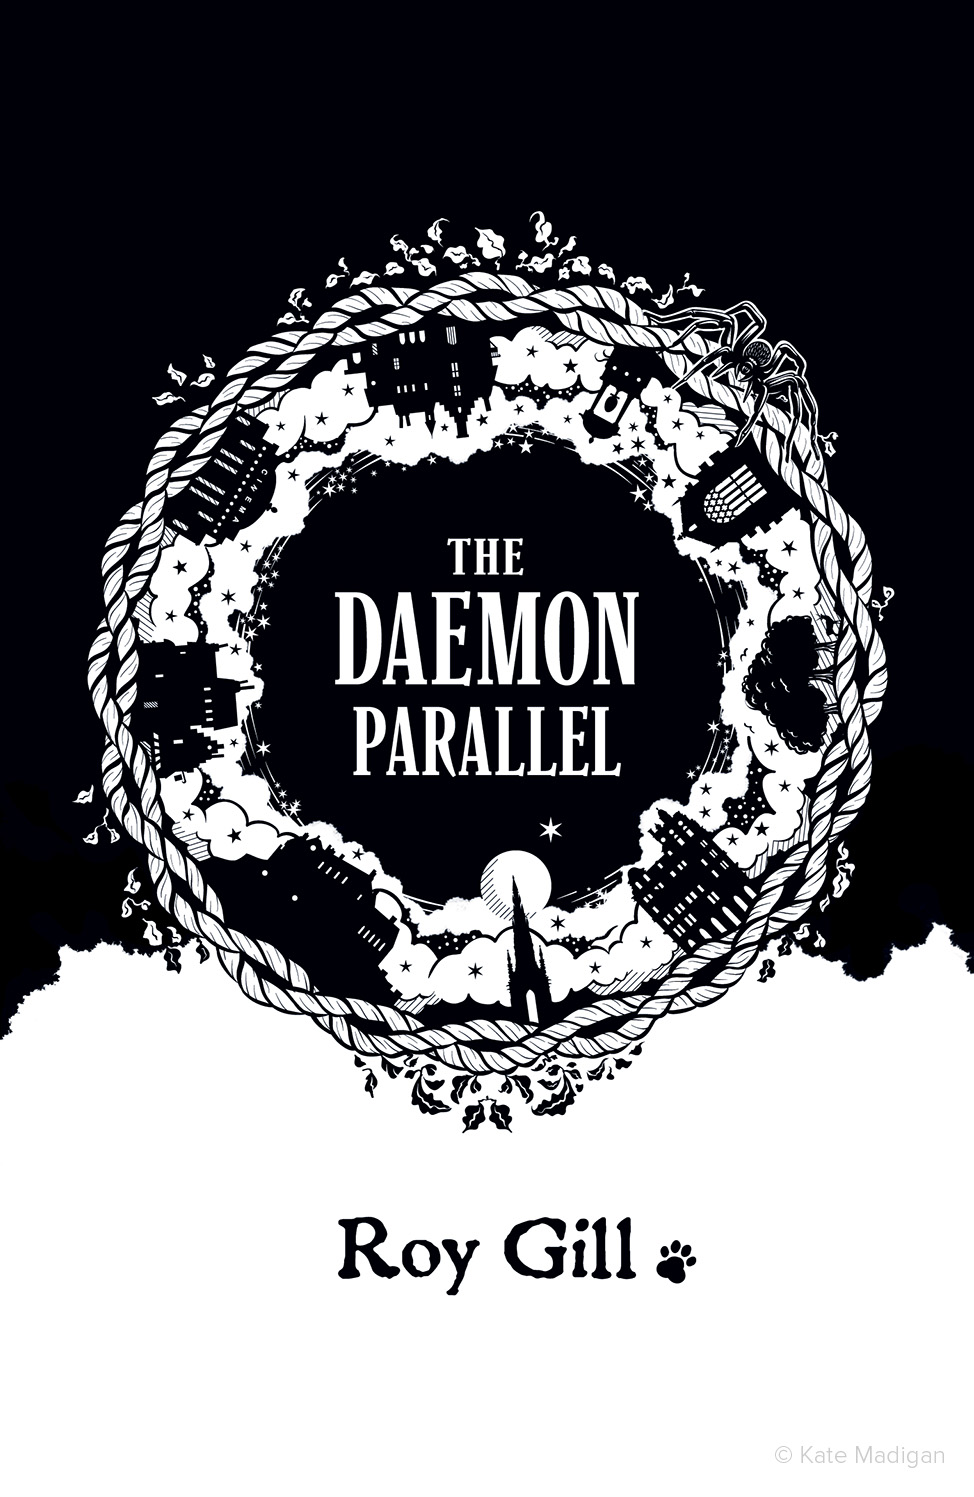 Imagined, alternative cover for Roy Gill's debut novel The Daemon Parallel, featuring motifs and locations from the book (twisted wool, ivy and vegetation, deer in a forest, the full moon, a spider, the Scott Monument in Edinburgh, Jenners Department Store, Edinburgh Castle, the Heave Awa' Hoose tenement building, an art deco cinema, a shop in the Old Town, St Bernard's Well, Holyrood Chapel, a paw print and a magical cloudscape).Illustration copyright Kate Madigan.